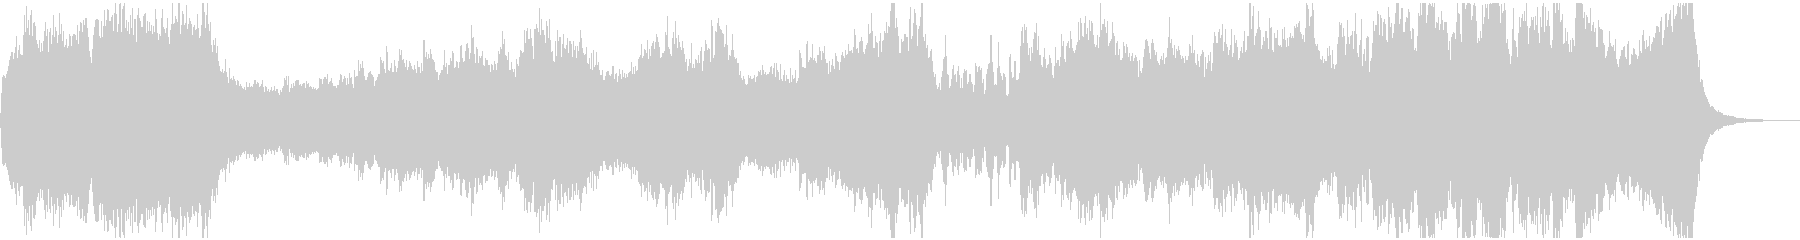 FANTASYLAND's unreproduced waveform